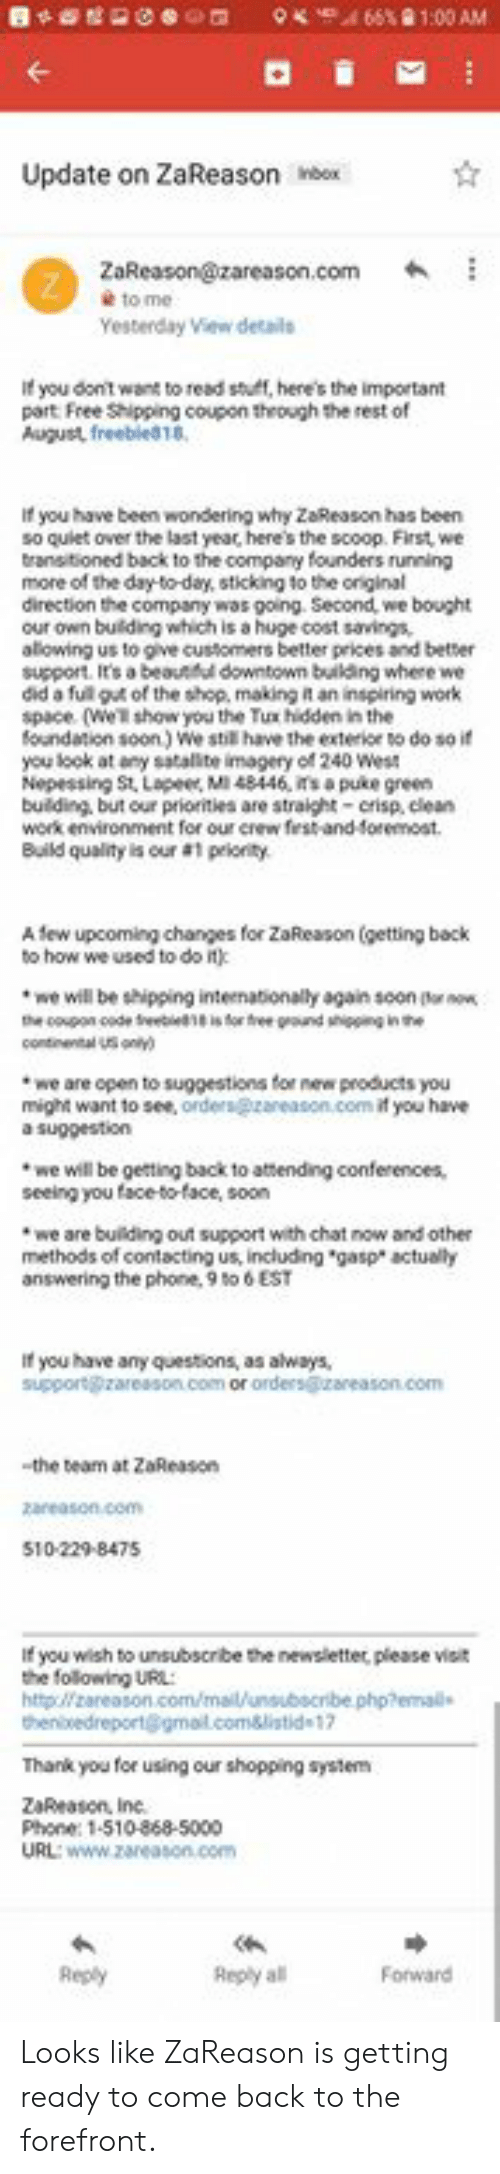 """Irs, Memes, and Phone: Update on ZaReason bex  Yesterday View details  If you don't want to read stult, hene's the important  part Free Shipping coupon theough the rest of  August, freebled18,  If you have been wondering why ZaReason has been  so quiet over the last year, here's the scoop. First, we  transitioned back to the company founders running  more of the day-to-day, sticking to the original  direction the company was going. Second, we bought  our own buiding which is huge cost savings,  alowing us to give customers better prices and better  support. It's a beauul downtown bulding where we  did a ful gut of the shop, making t an inspiring work  space (we show you the Tux hidden in the  foundation soon) We stil have the extericr to do so if  you look at any satalite imagery of 240 Wes  Nepessing St. Lapeer, M148446, irs a puke green  building, but our priorities are straight-crisp, clean  work environment for our crew frst and foremost  Build quality is our #1 peloity  A few upcoming changes for ZaReason (getting back  to how we used to do it)  we will be shipping inteenationally again soon (o now  we are open to suggestions for new products you  might want to see, orders@zareason.com if you have  a suggestion  we will be getting back to attending conferences,  seeing you face-to-face, soon  we are building out support with chat now and other  methods of contacting us, including """"gasp actually  answering the phone,9 6EST  If you have any questions, as always,  the team at ZaReason  If you wish to unsubscribe the newsletter, please visit  the following URL:  httplzareason  Thank you for using our shopping syste  ZaReason, Ine  Phone: 1-510-868-5000  Reply al  Fotward Looks like ZaReason is getting ready to come back to the forefront."""